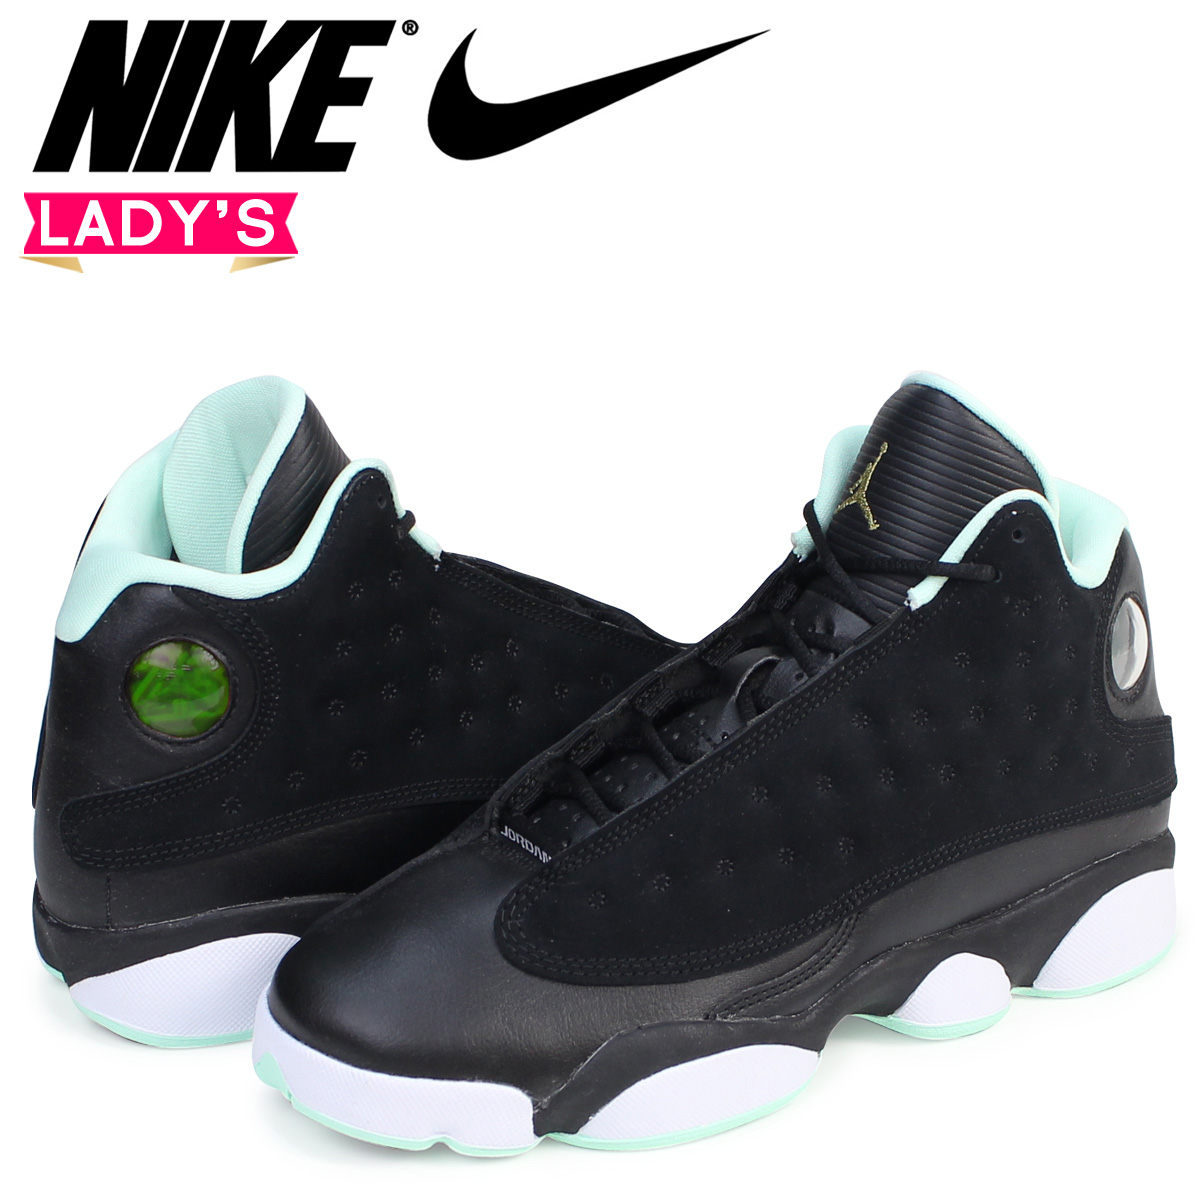 Nike NIKE Air Jordan 13 Nostalgic Ladys Sneakers AIR JORDAN RETRO 439358 015 Shoes Black 7 27 Shinnyu Load 177